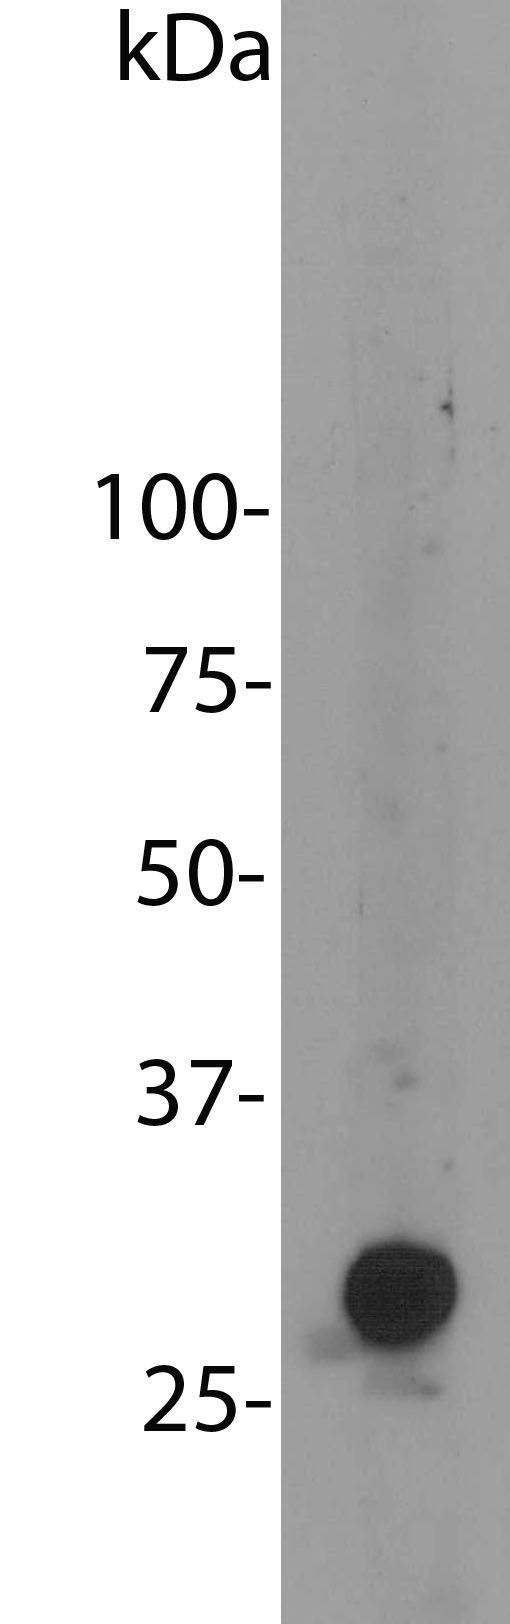 Blot of HEK293 cells transfected with pFin-EF1-mCherry vector, courtesy of the Semple-Rowland lab at the University of Florida. There is a strong clean band at about 30 kDa. HEK293 cells which were not transfected with this vector show no protein bands.